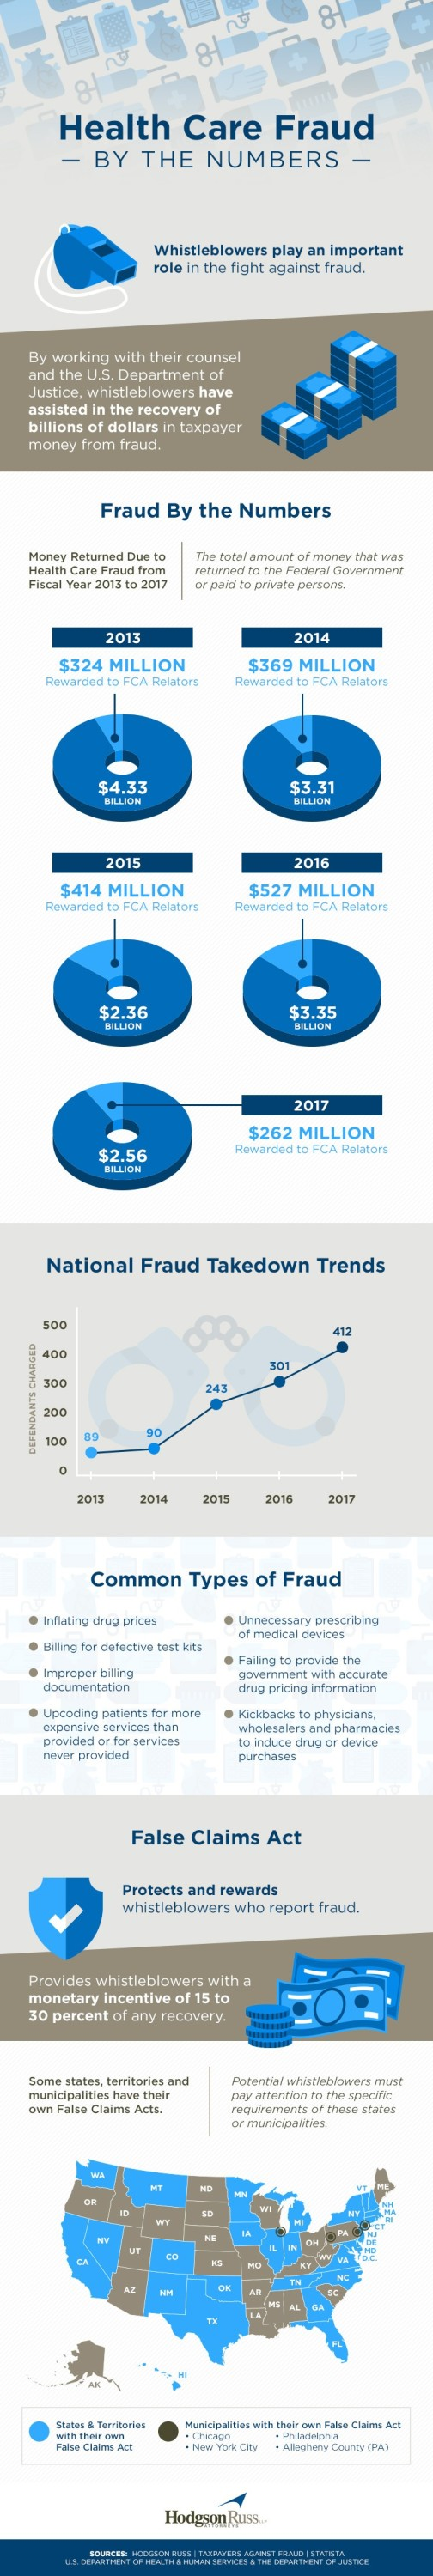 health care fraud micrographic by the numbers